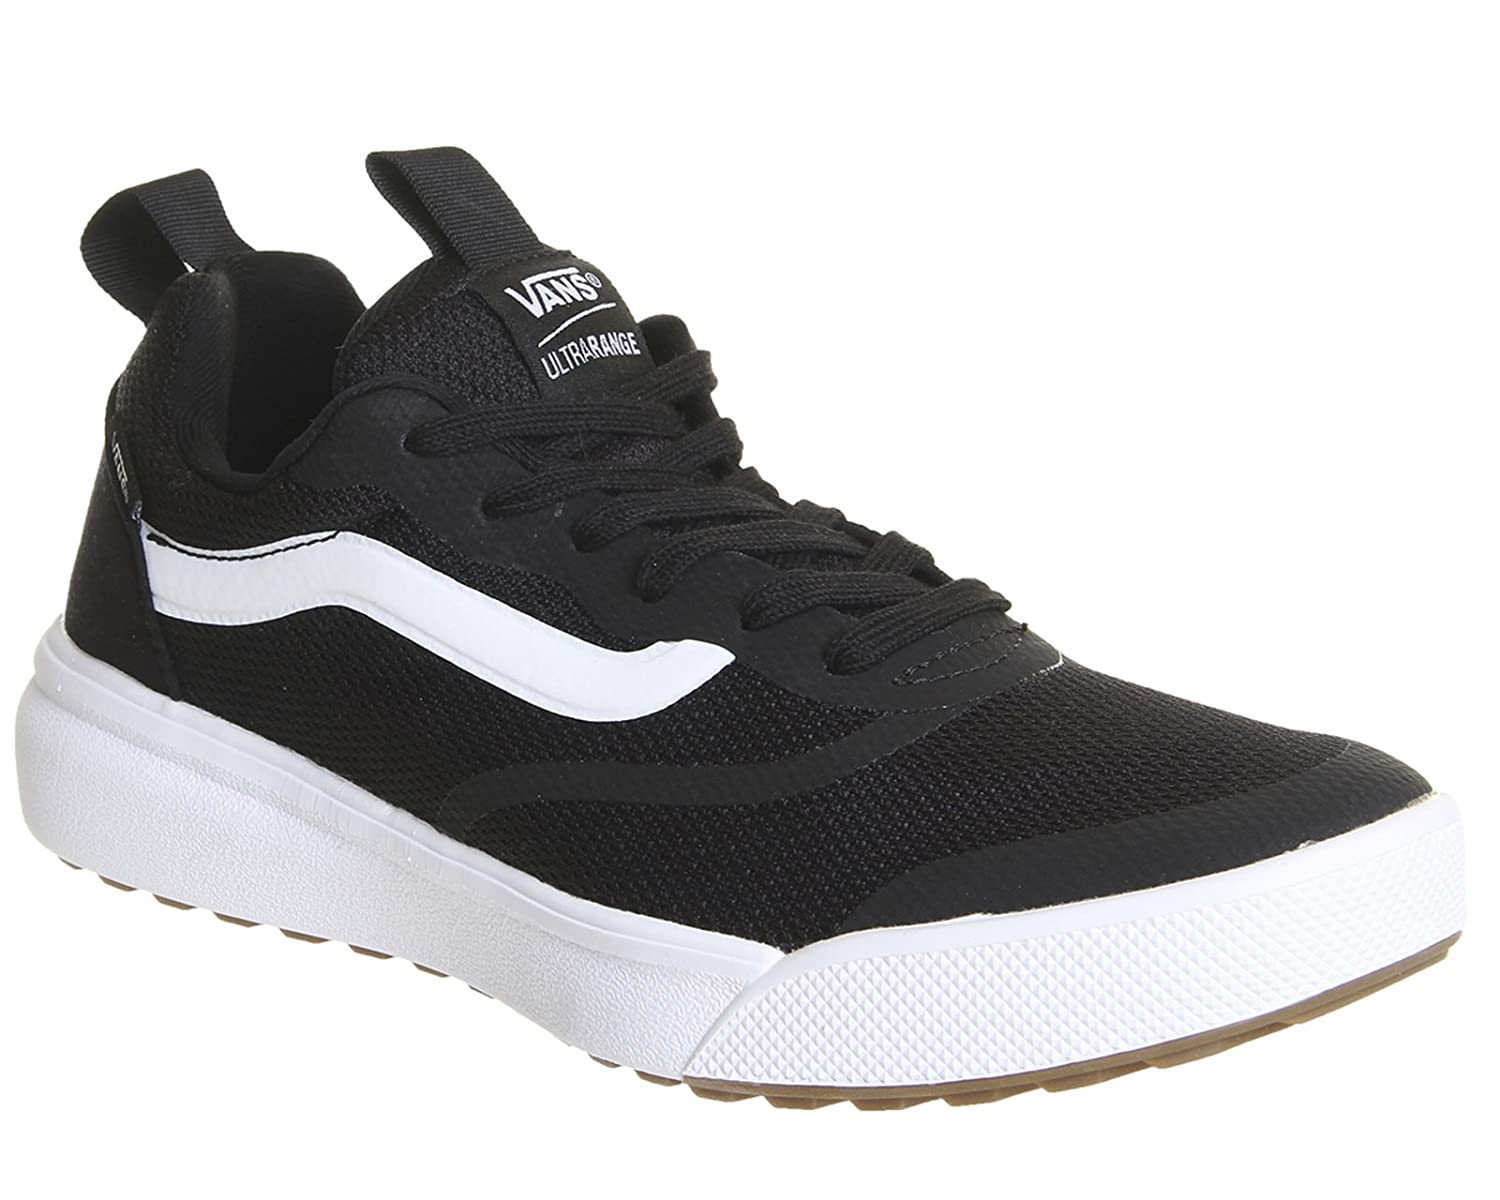 Vans Men's Ultrarange Rapidweld Skate Shoe 9.5 D(M) US|Black/White